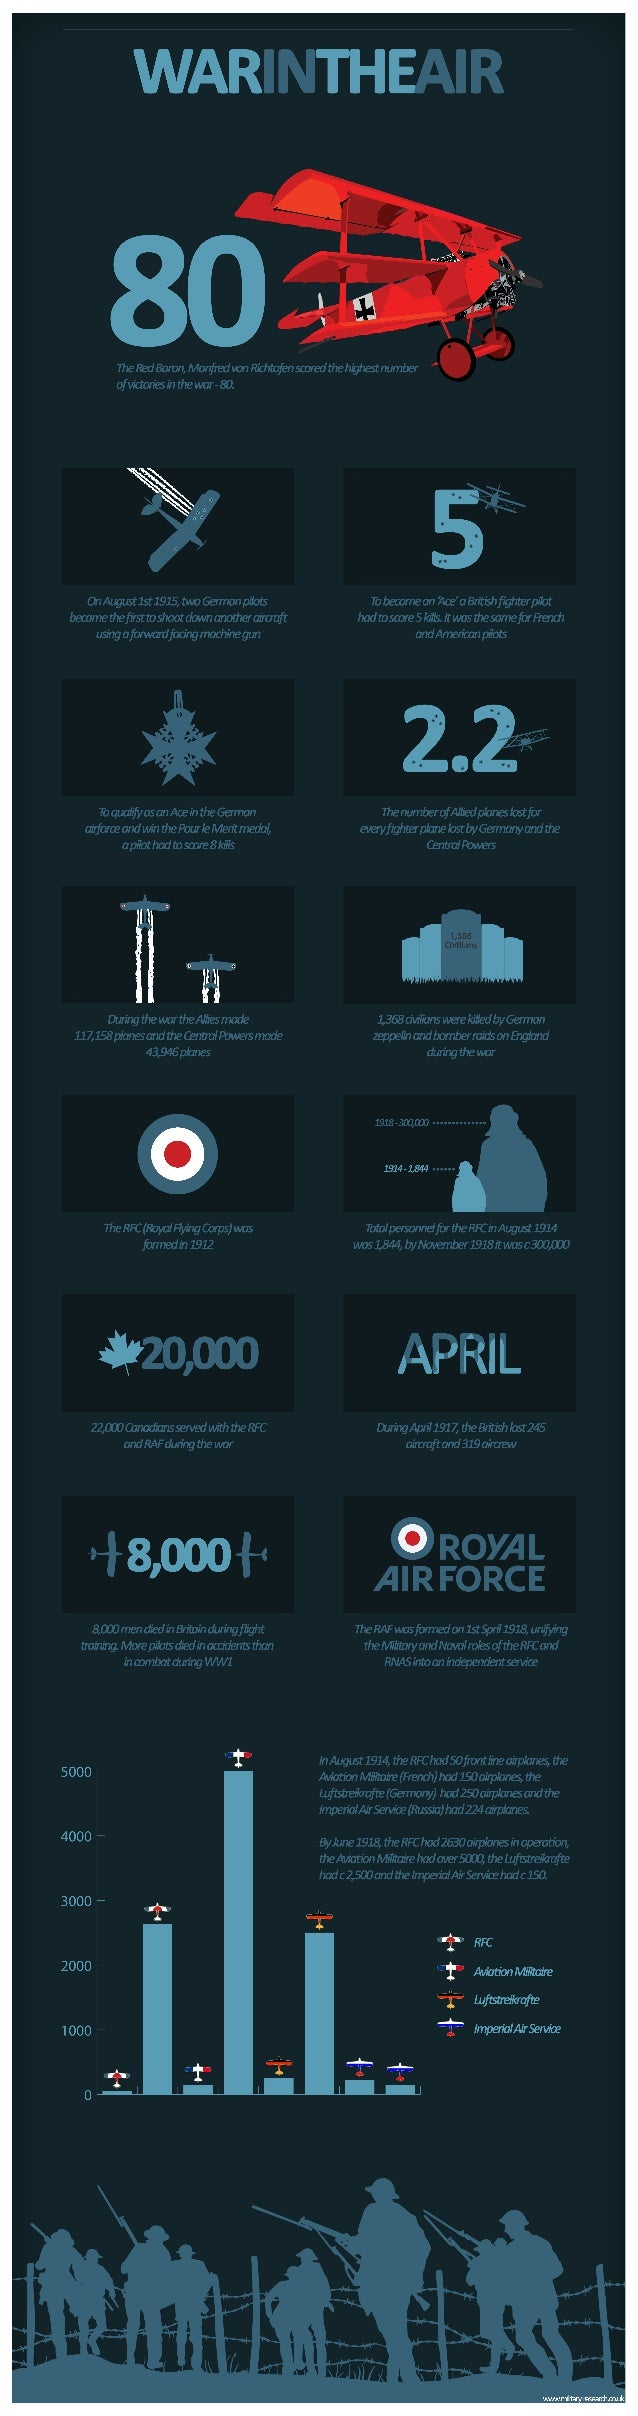 First World War infographic: The War in the Air